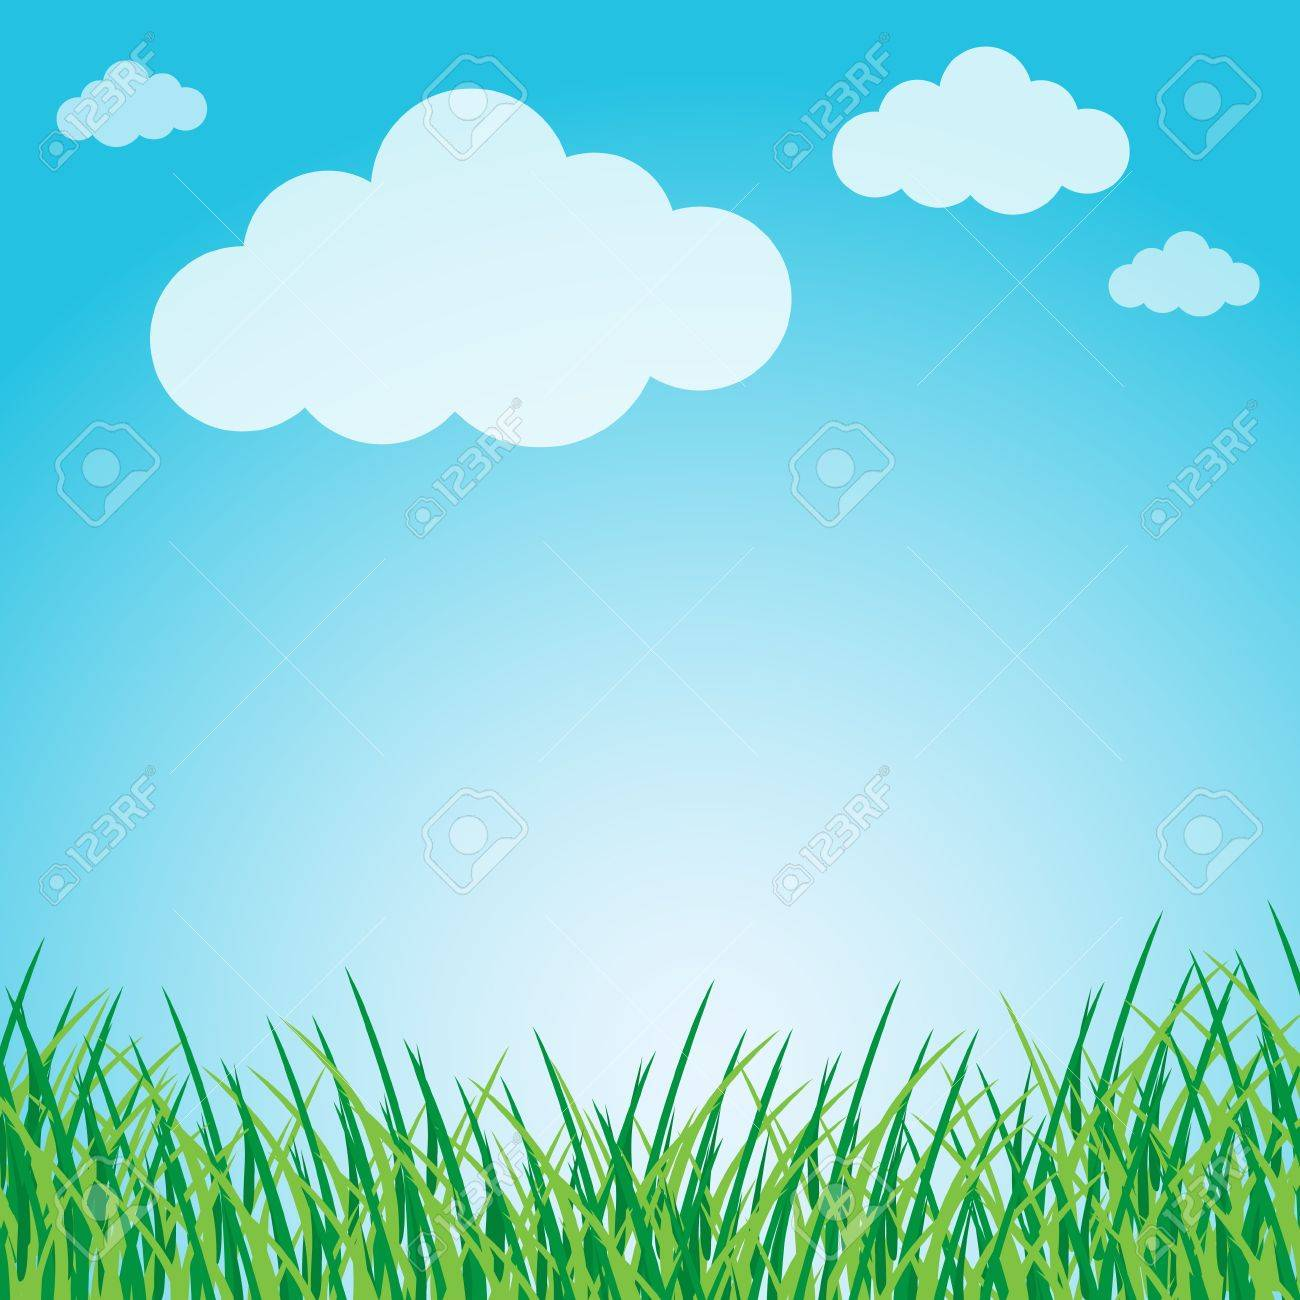 Grassy green field and blue sky Stock Vector - 12816922